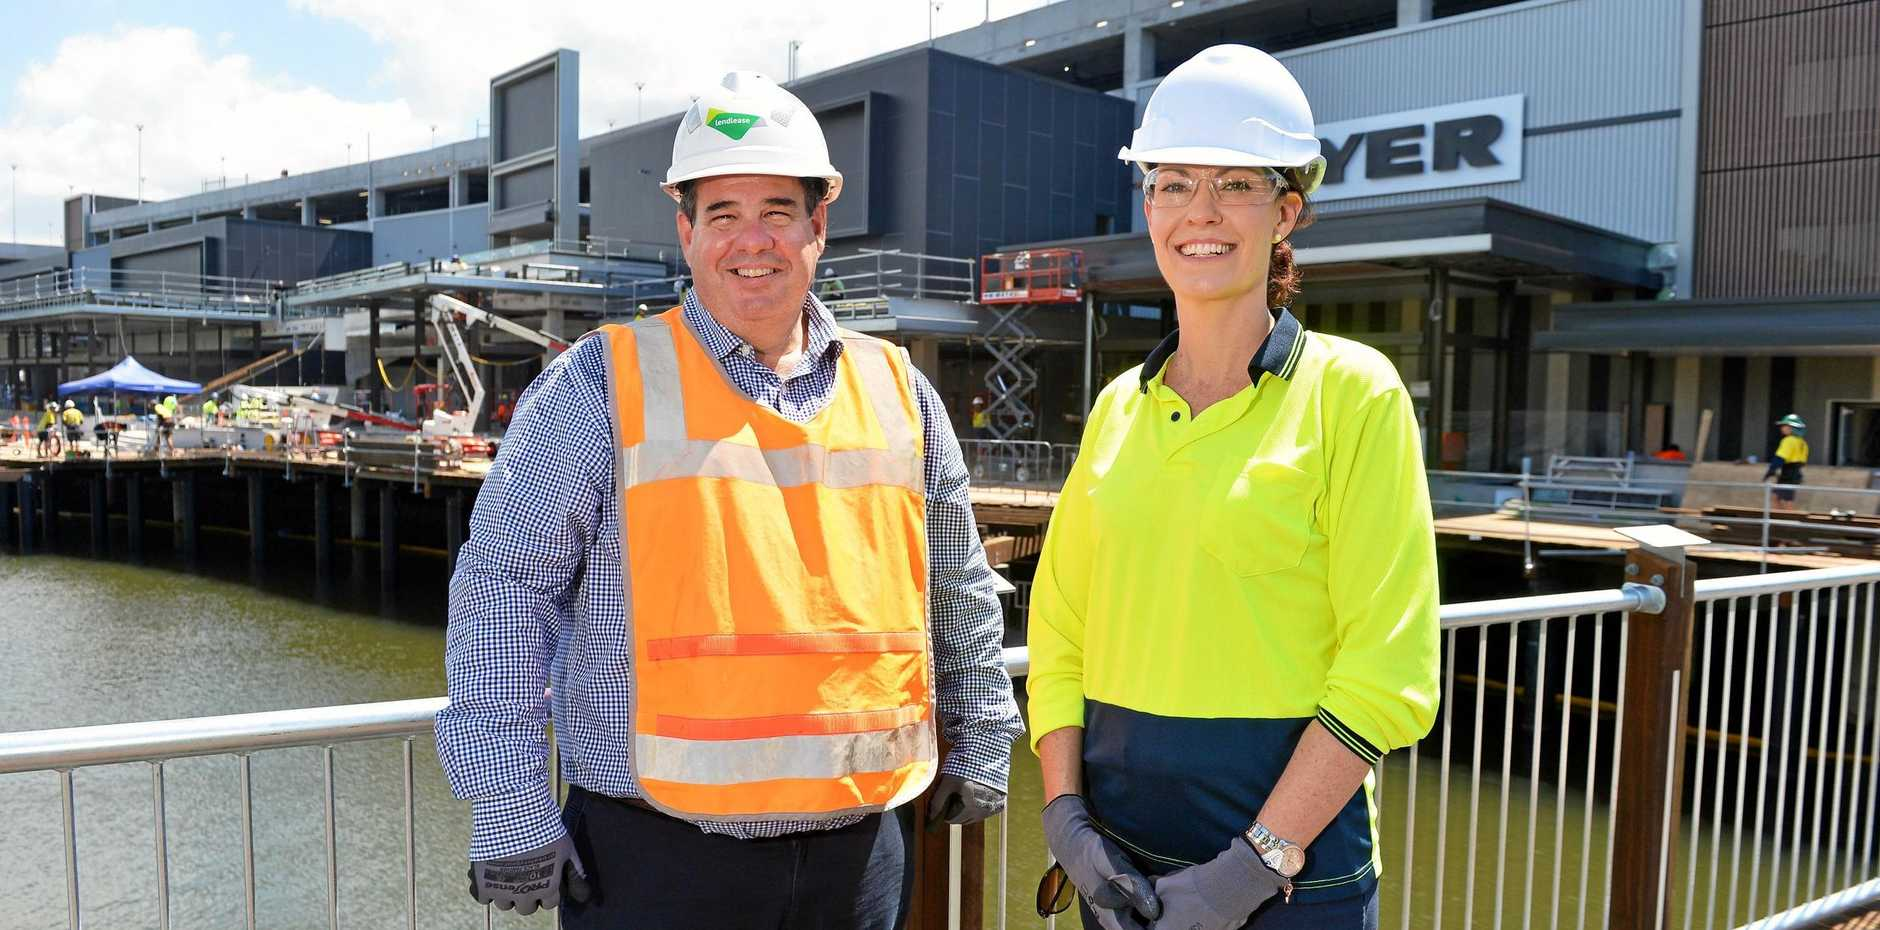 Sunshine Plaza centre manager Michael Manwaring and marketing manager Kylie Riches have some sleepless nights ahead of them as they prepare for the opening of Stage 2 of the $440 million redevelopment next Thursday.